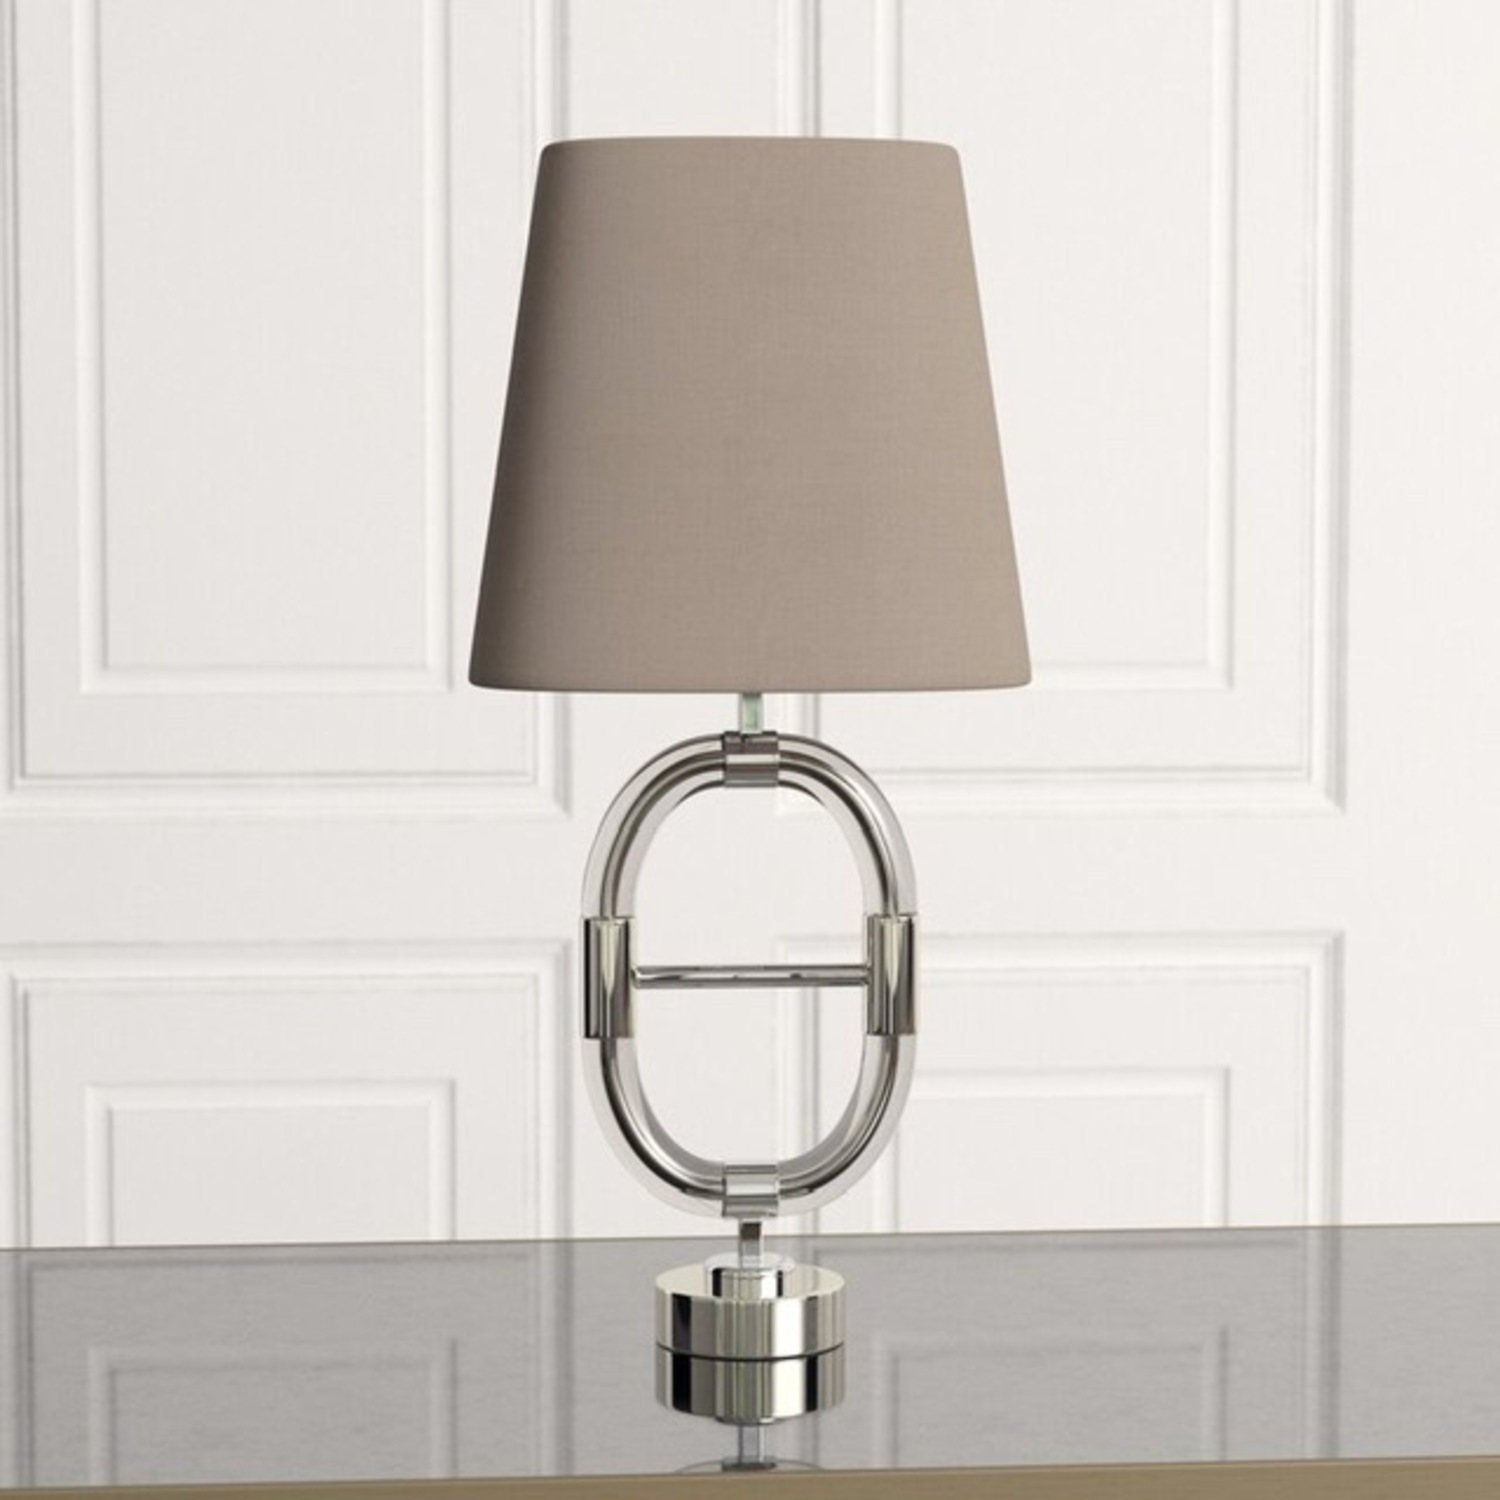 Jonathan Adler Jacques Capsule Table Lamps - image-3